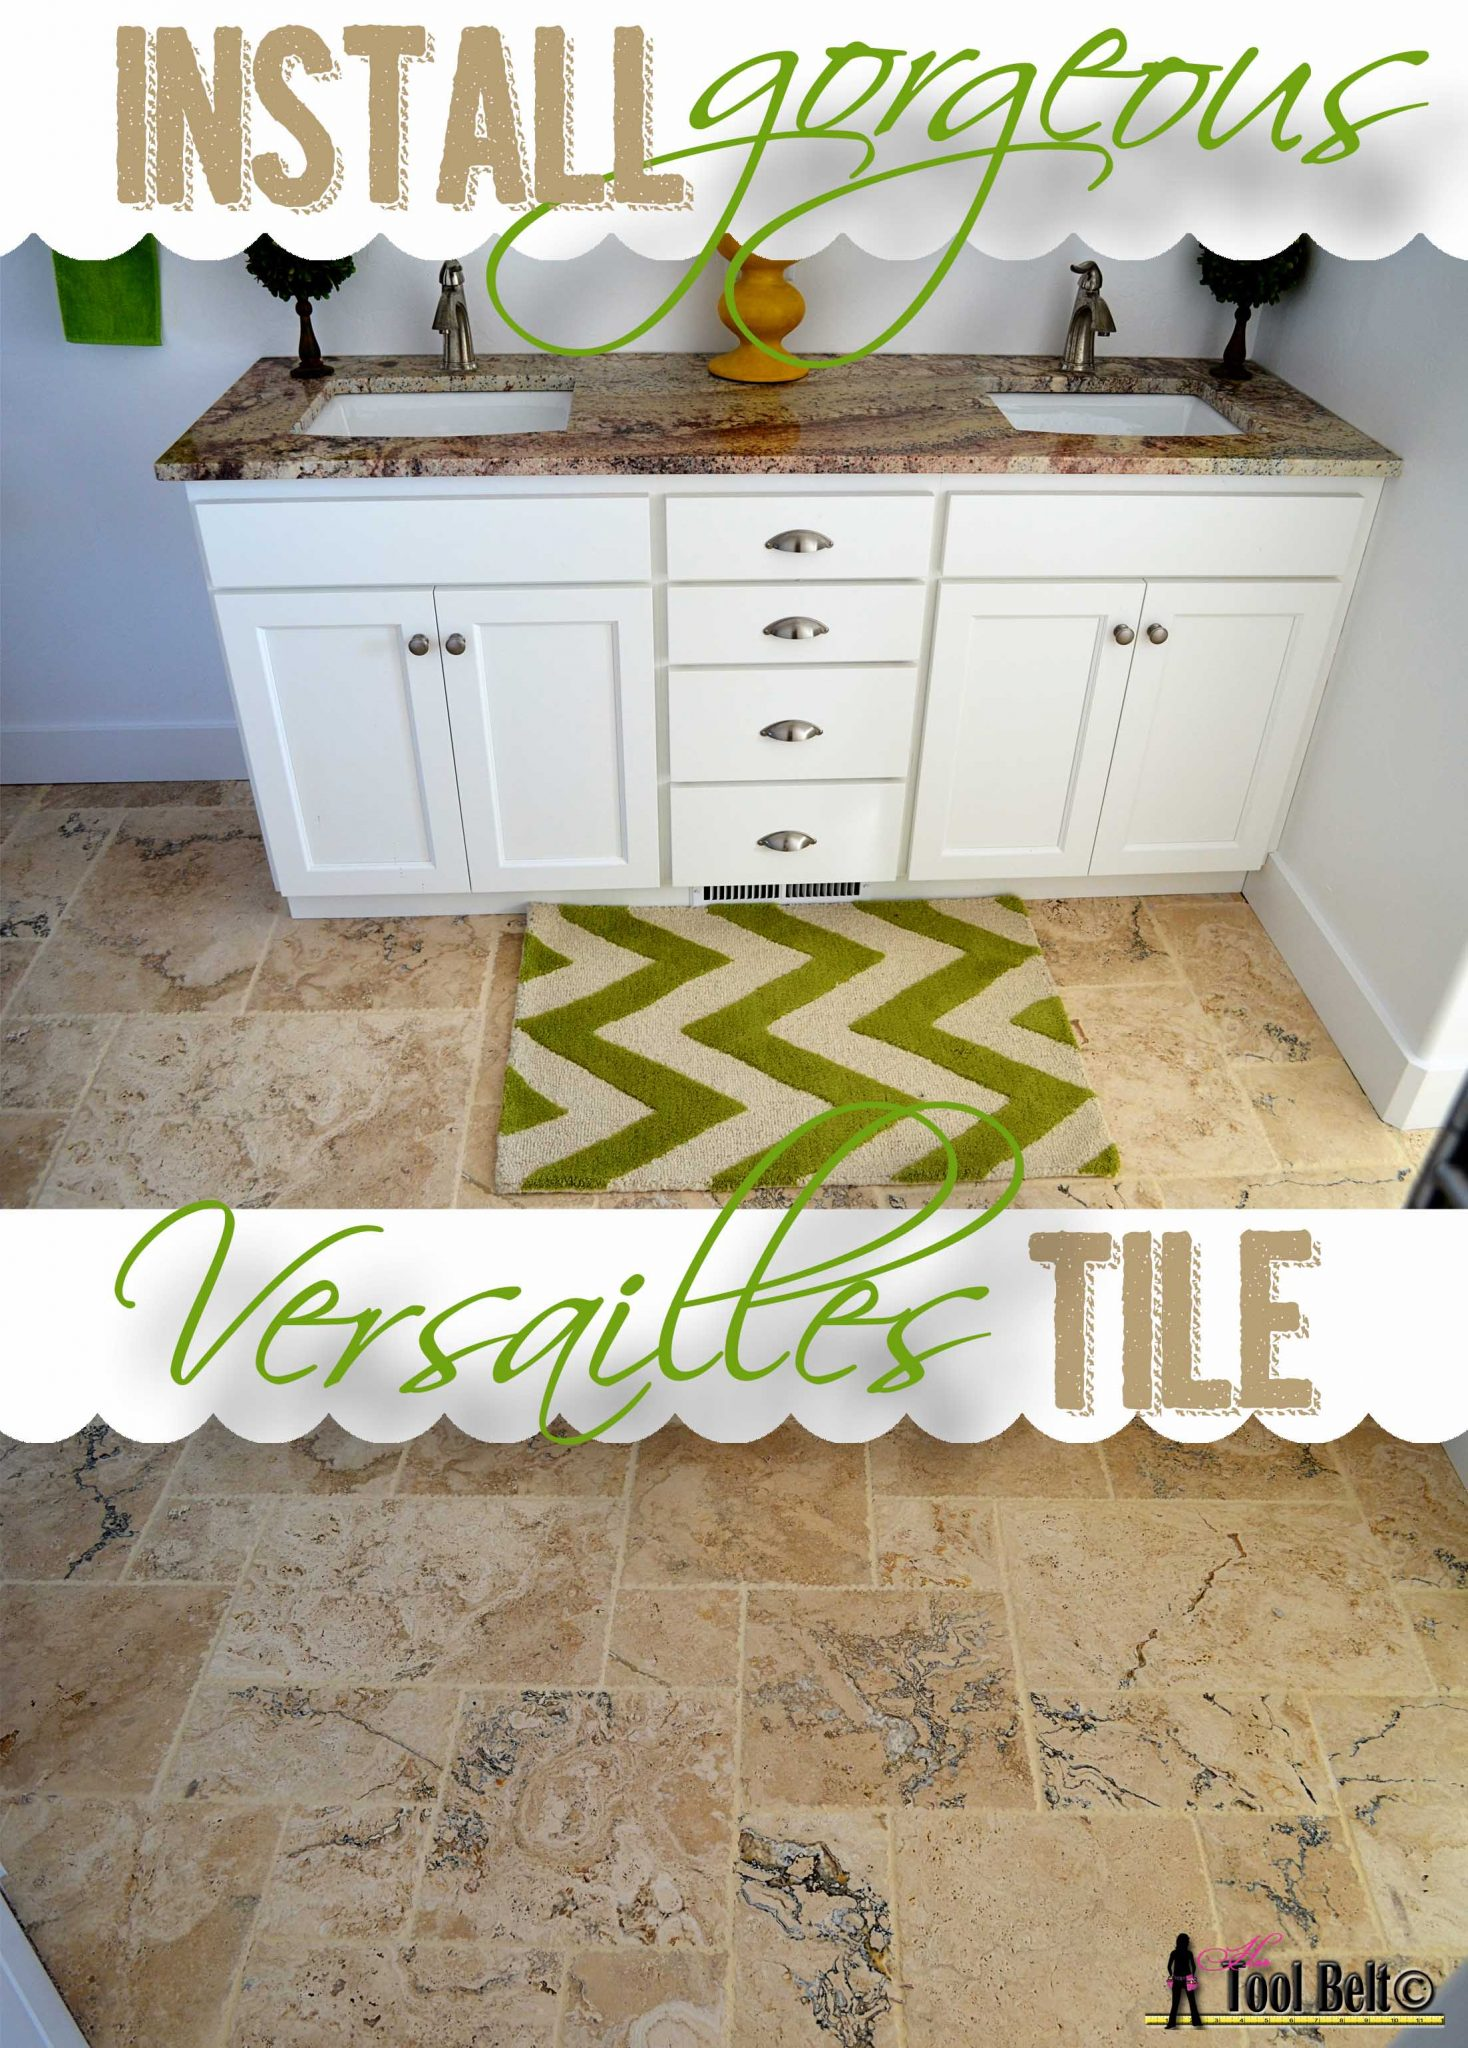 Travertine versailles pattern tile tutorial her tool belt install gorgeous versailles tile tutorial dailygadgetfo Gallery